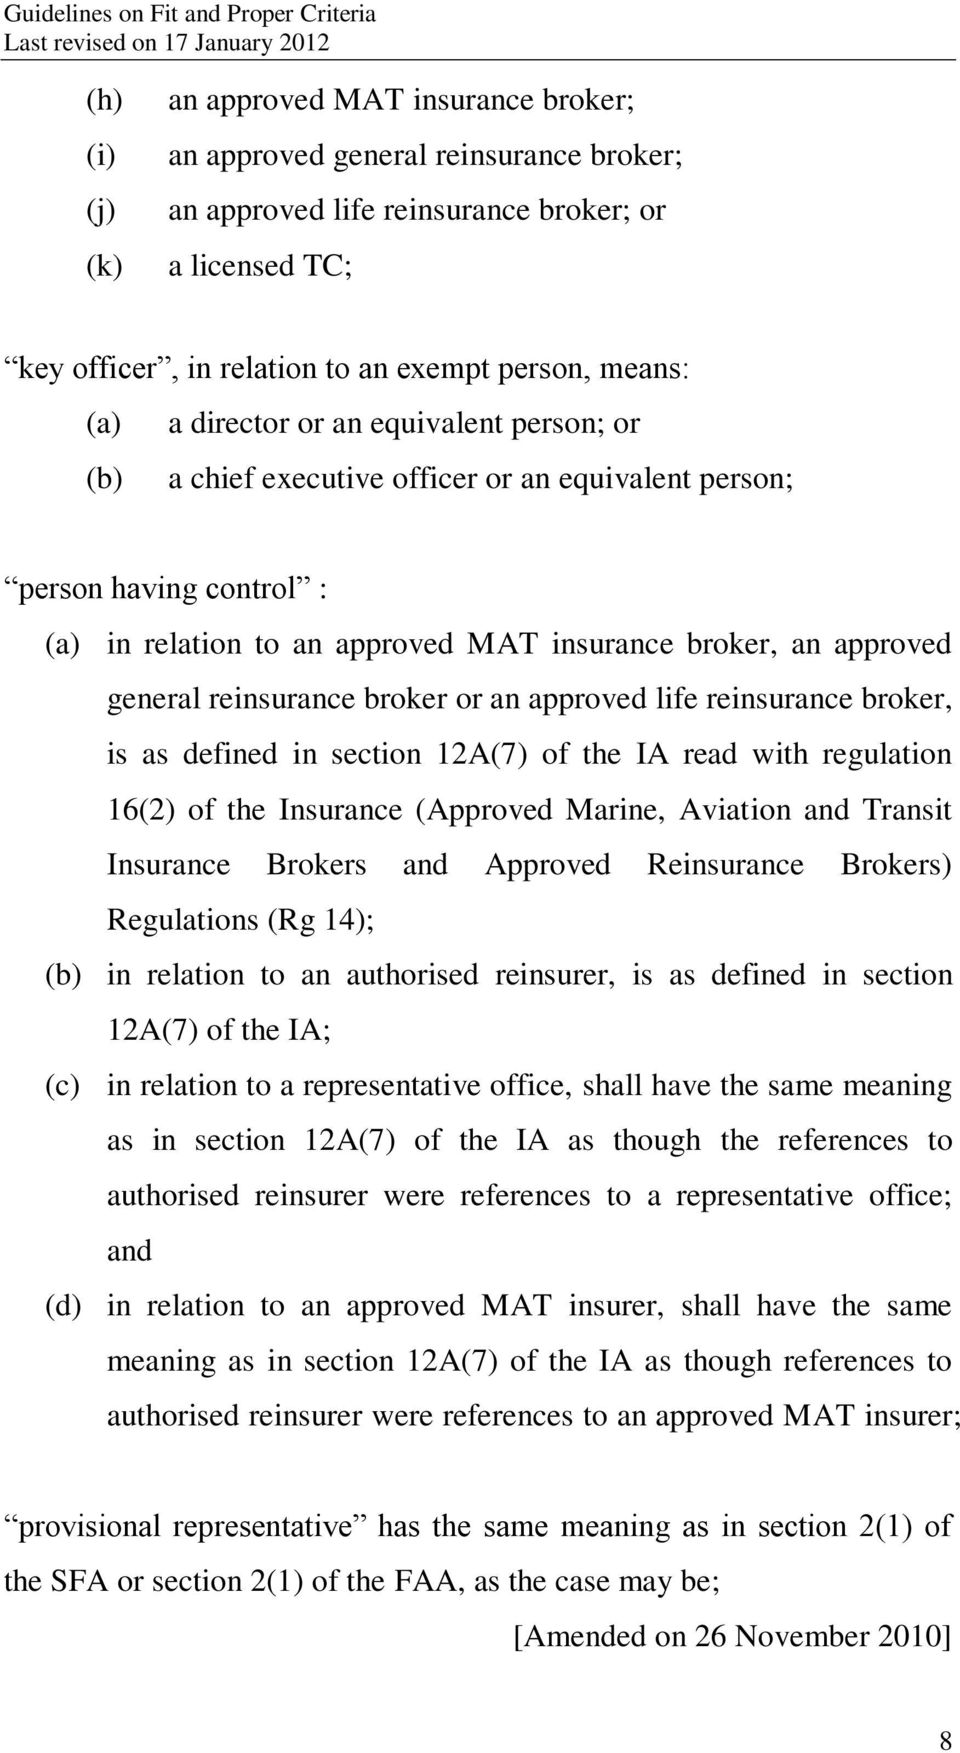 reinsurance broker or an approved life reinsurance broker, is as defined in section 12A(7) of the IA read with regulation 16(2) of the Insurance (Approved Marine, Aviation and Transit Insurance